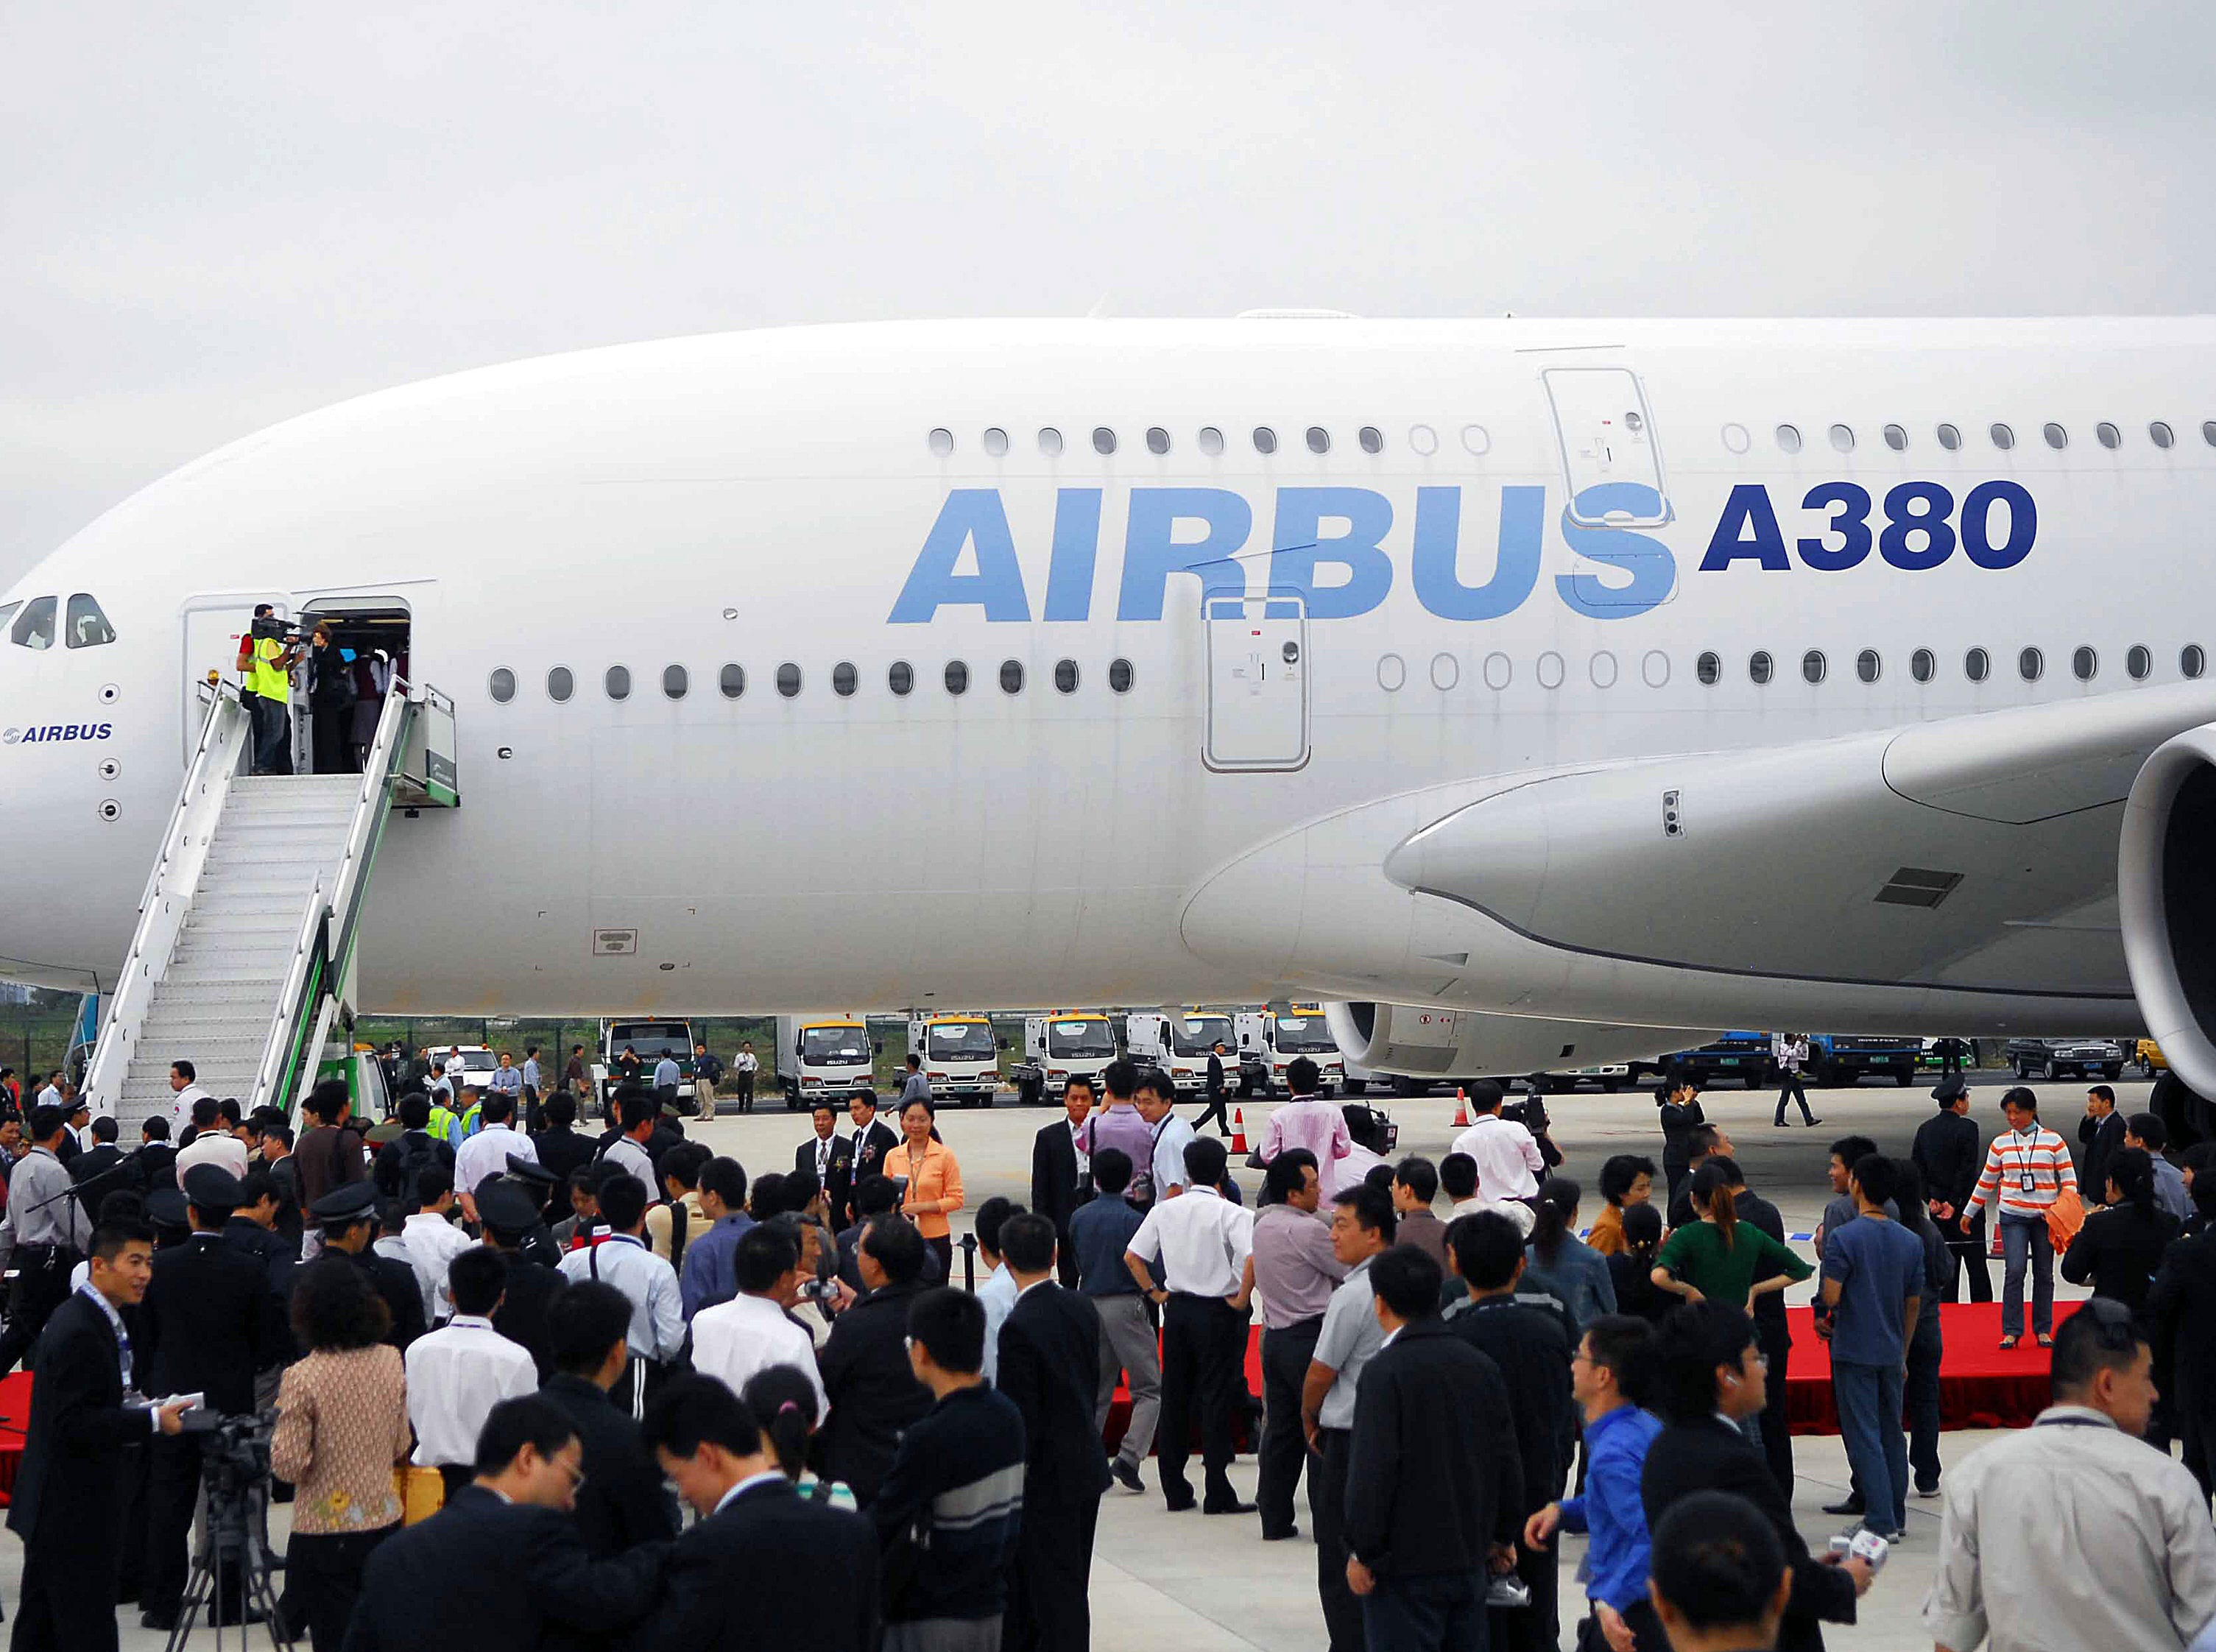 Chinese officials and guests gather around the new Airbus superjumbo A380 which landed at Guangzhou Baiyun airport, the first stop on mainland China, in Guangzhou, southern China's Guangdong province 22 November 2006.  The jet will leave for Beijing on 23 November and then head to Shanghai for an overnight stopover, before embarking on its final leg which will involve trips over the South and North Poles and stops in South Africa, Australia and Canada.        CHINA OUT  GETTY OUT      AFP PHOTO  (Photo credit should read STR/AFP/Getty Images) ORG XMIT: BEJ99